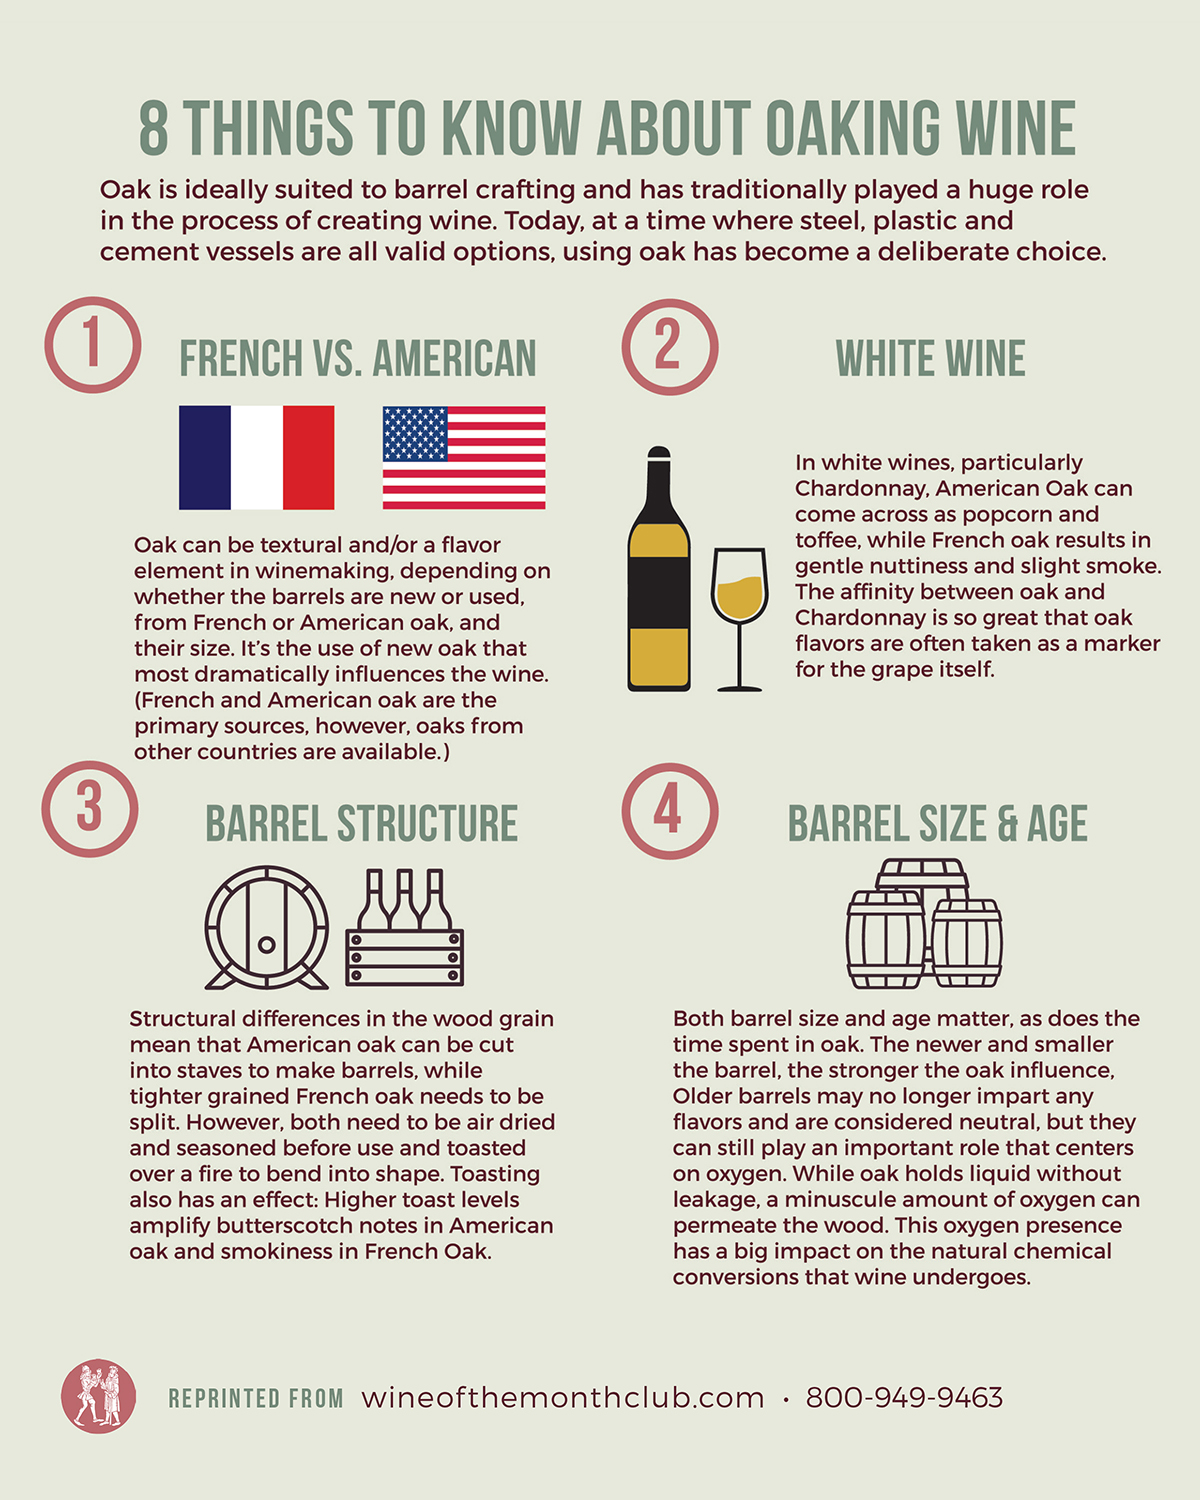 8 Things to Know About Oaking Wine